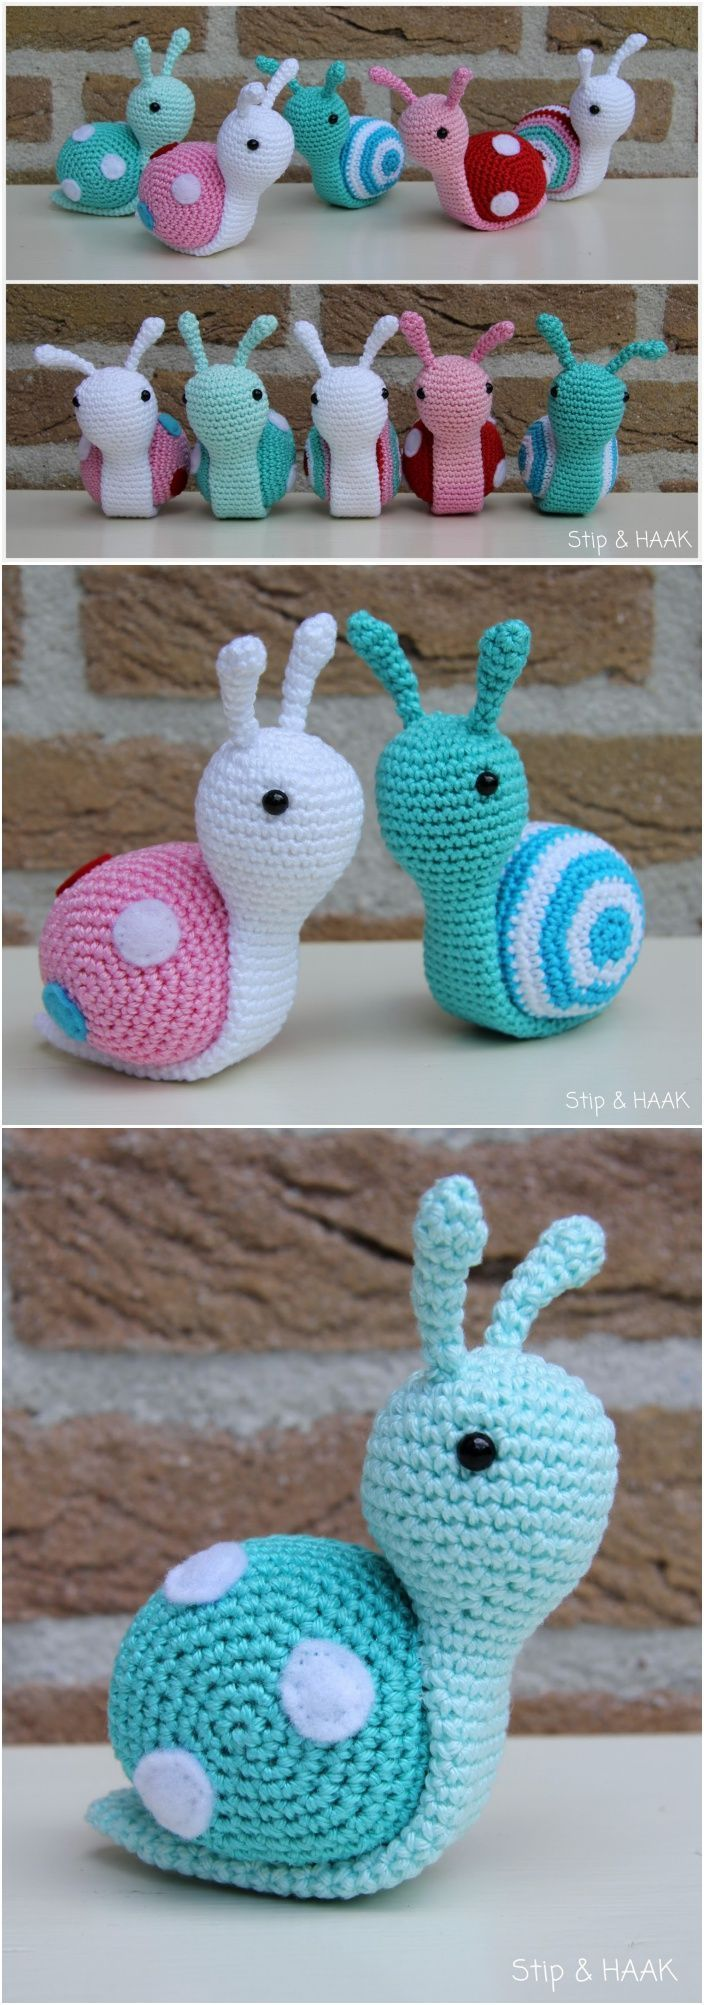 #Crochet Amigurumi Snail with Free Pattern Crochet Snail Pattern